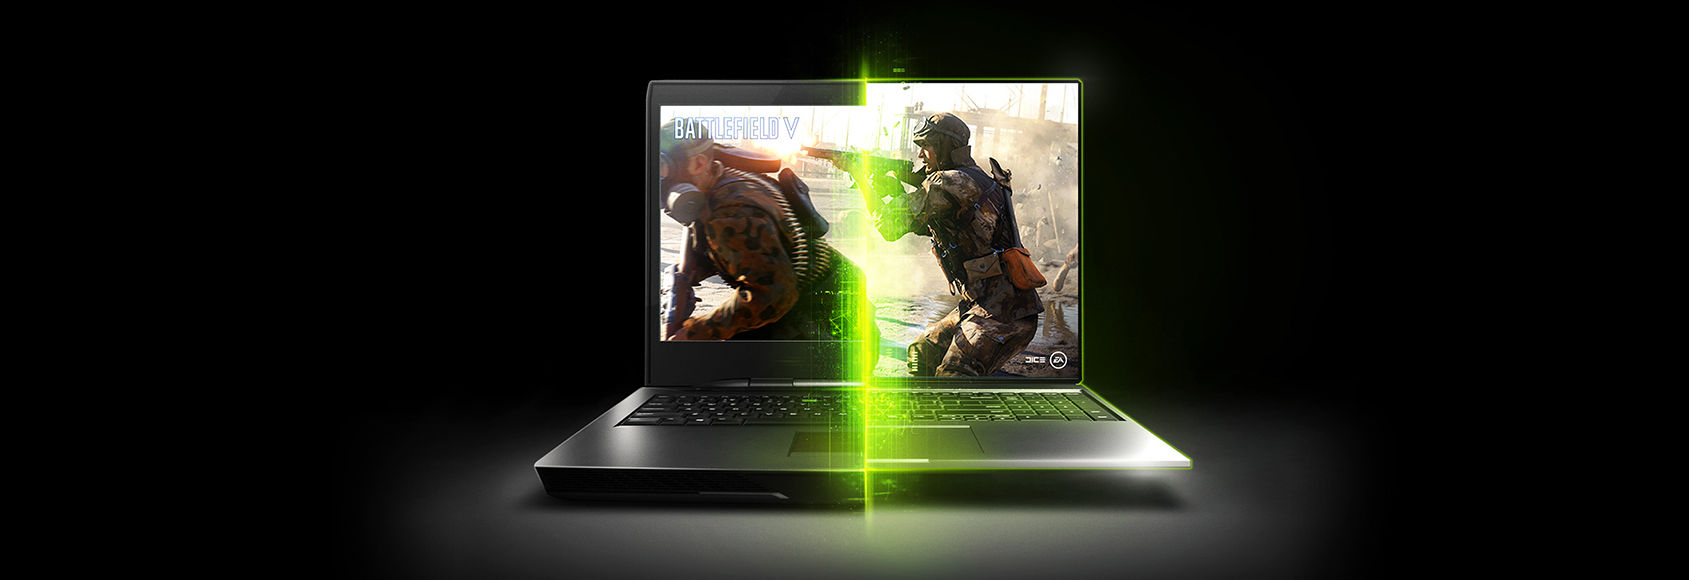 geforce-rtx-laptops-max-q-2560-dlYnNI9nGihhvJQ